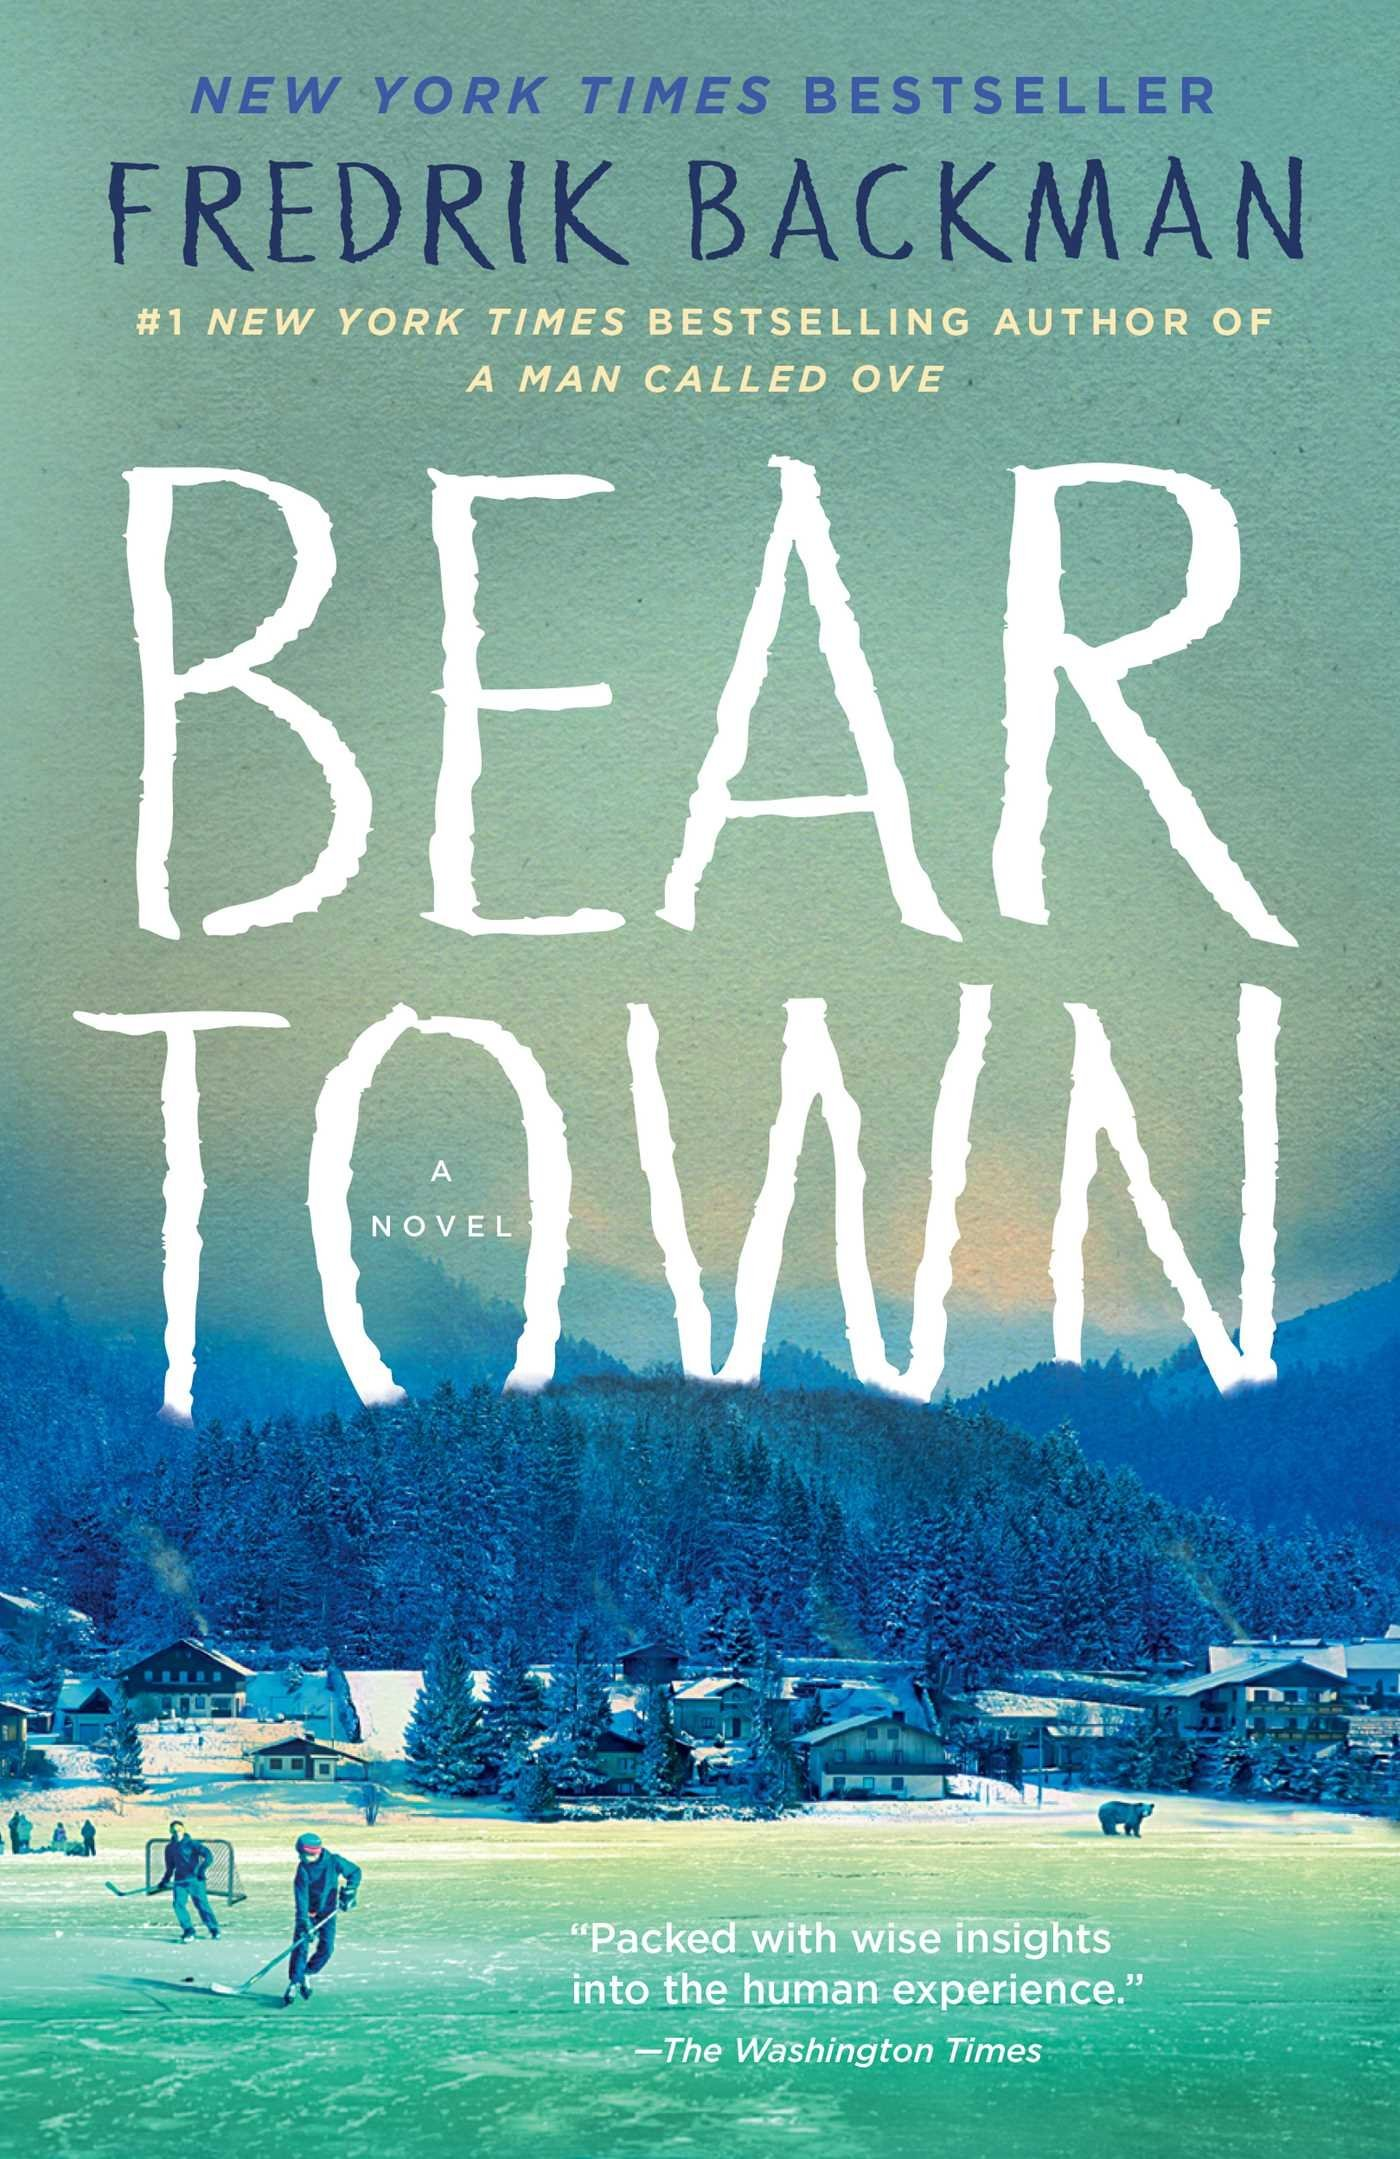 Fall Reading List 2019: Beartown